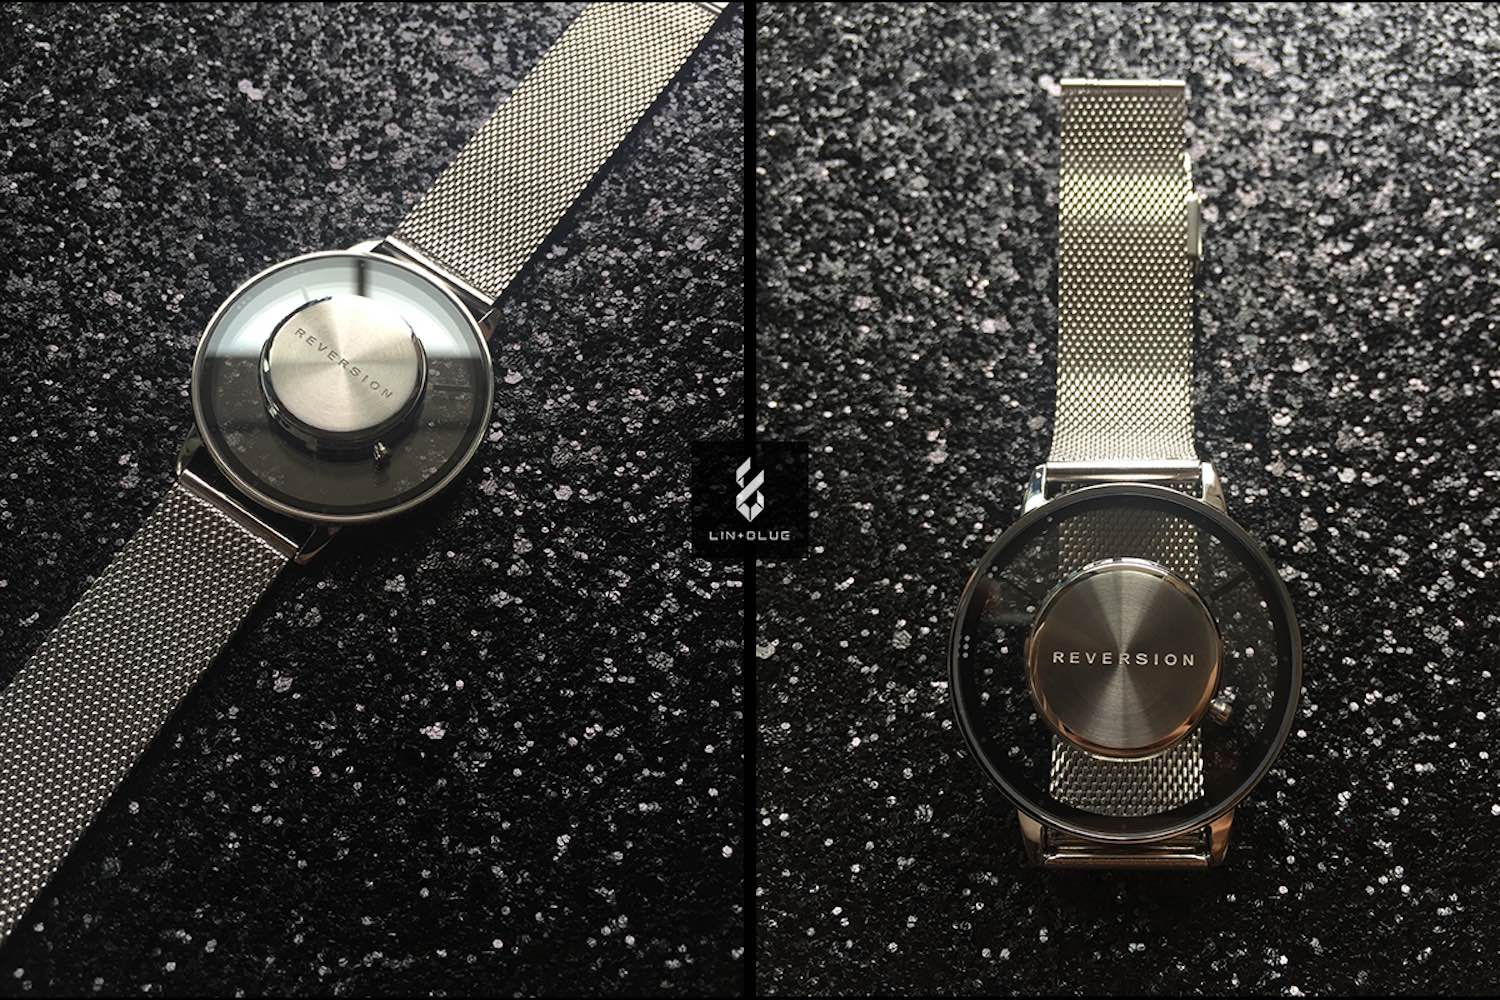 Reversion – The Watch